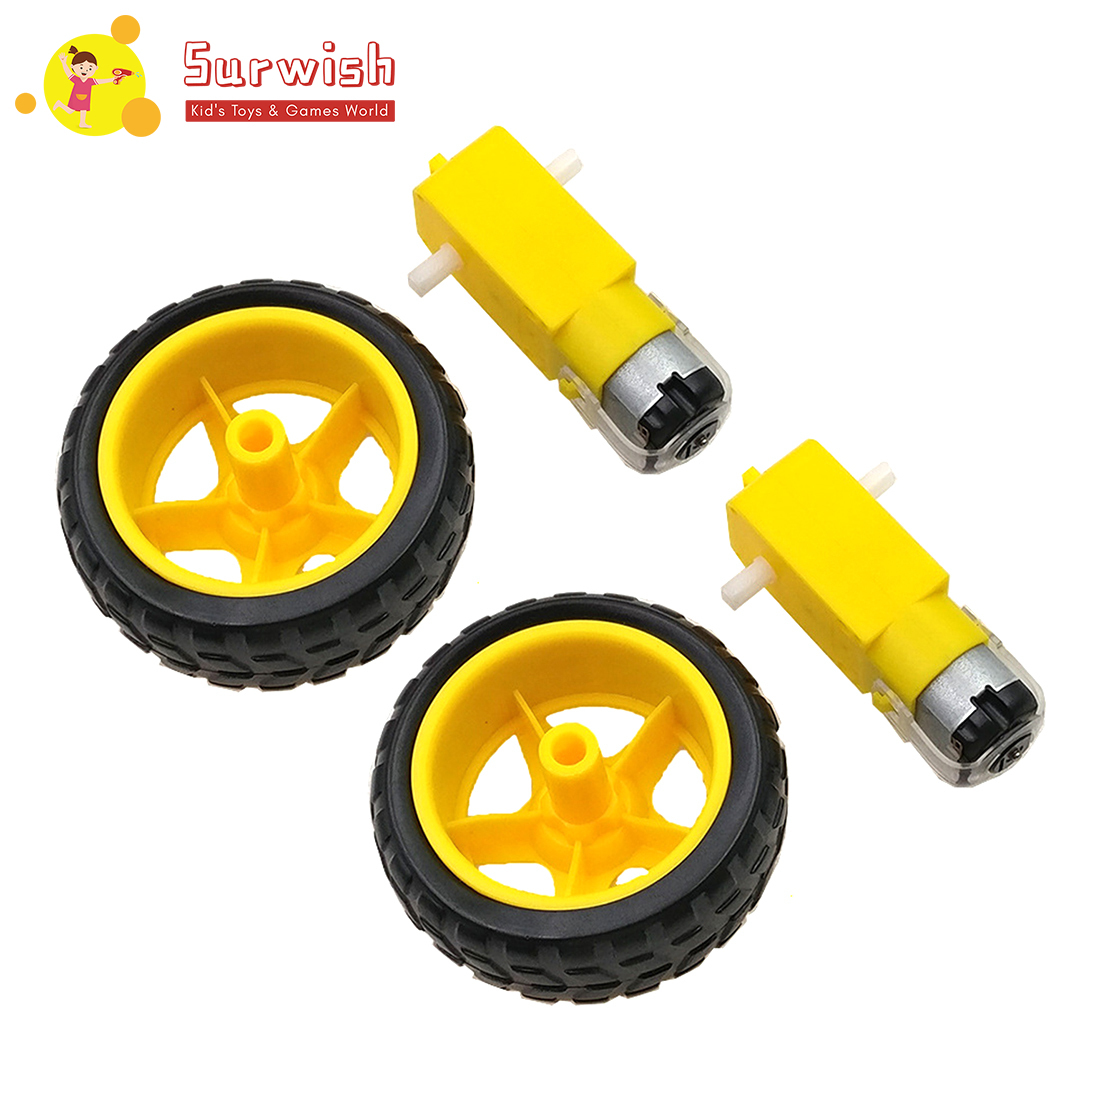 High Recommend 2Pcs/Lot Small Smart Car Tyres Wheel Robot Chassis Kit With DC Speed Reduction Motor